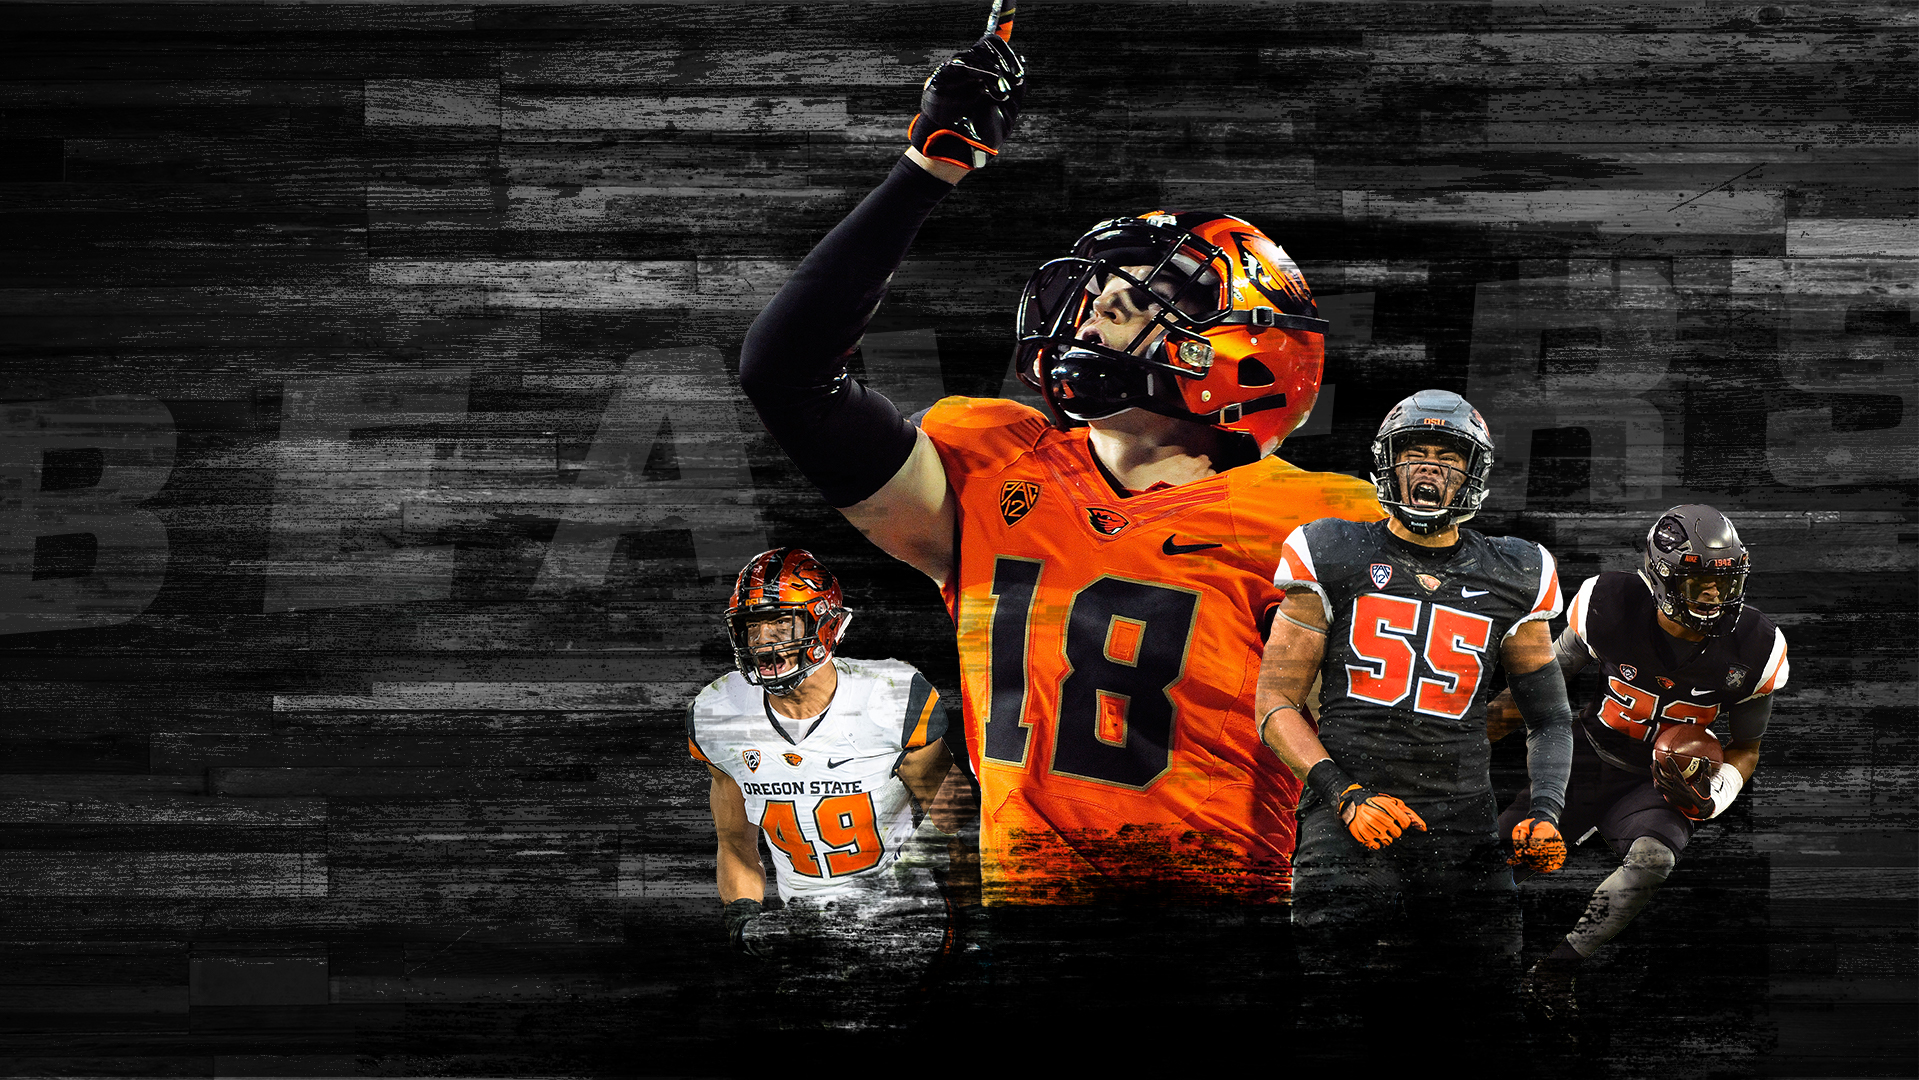 Football Wallpapers 2017 Oregon State University Athletics